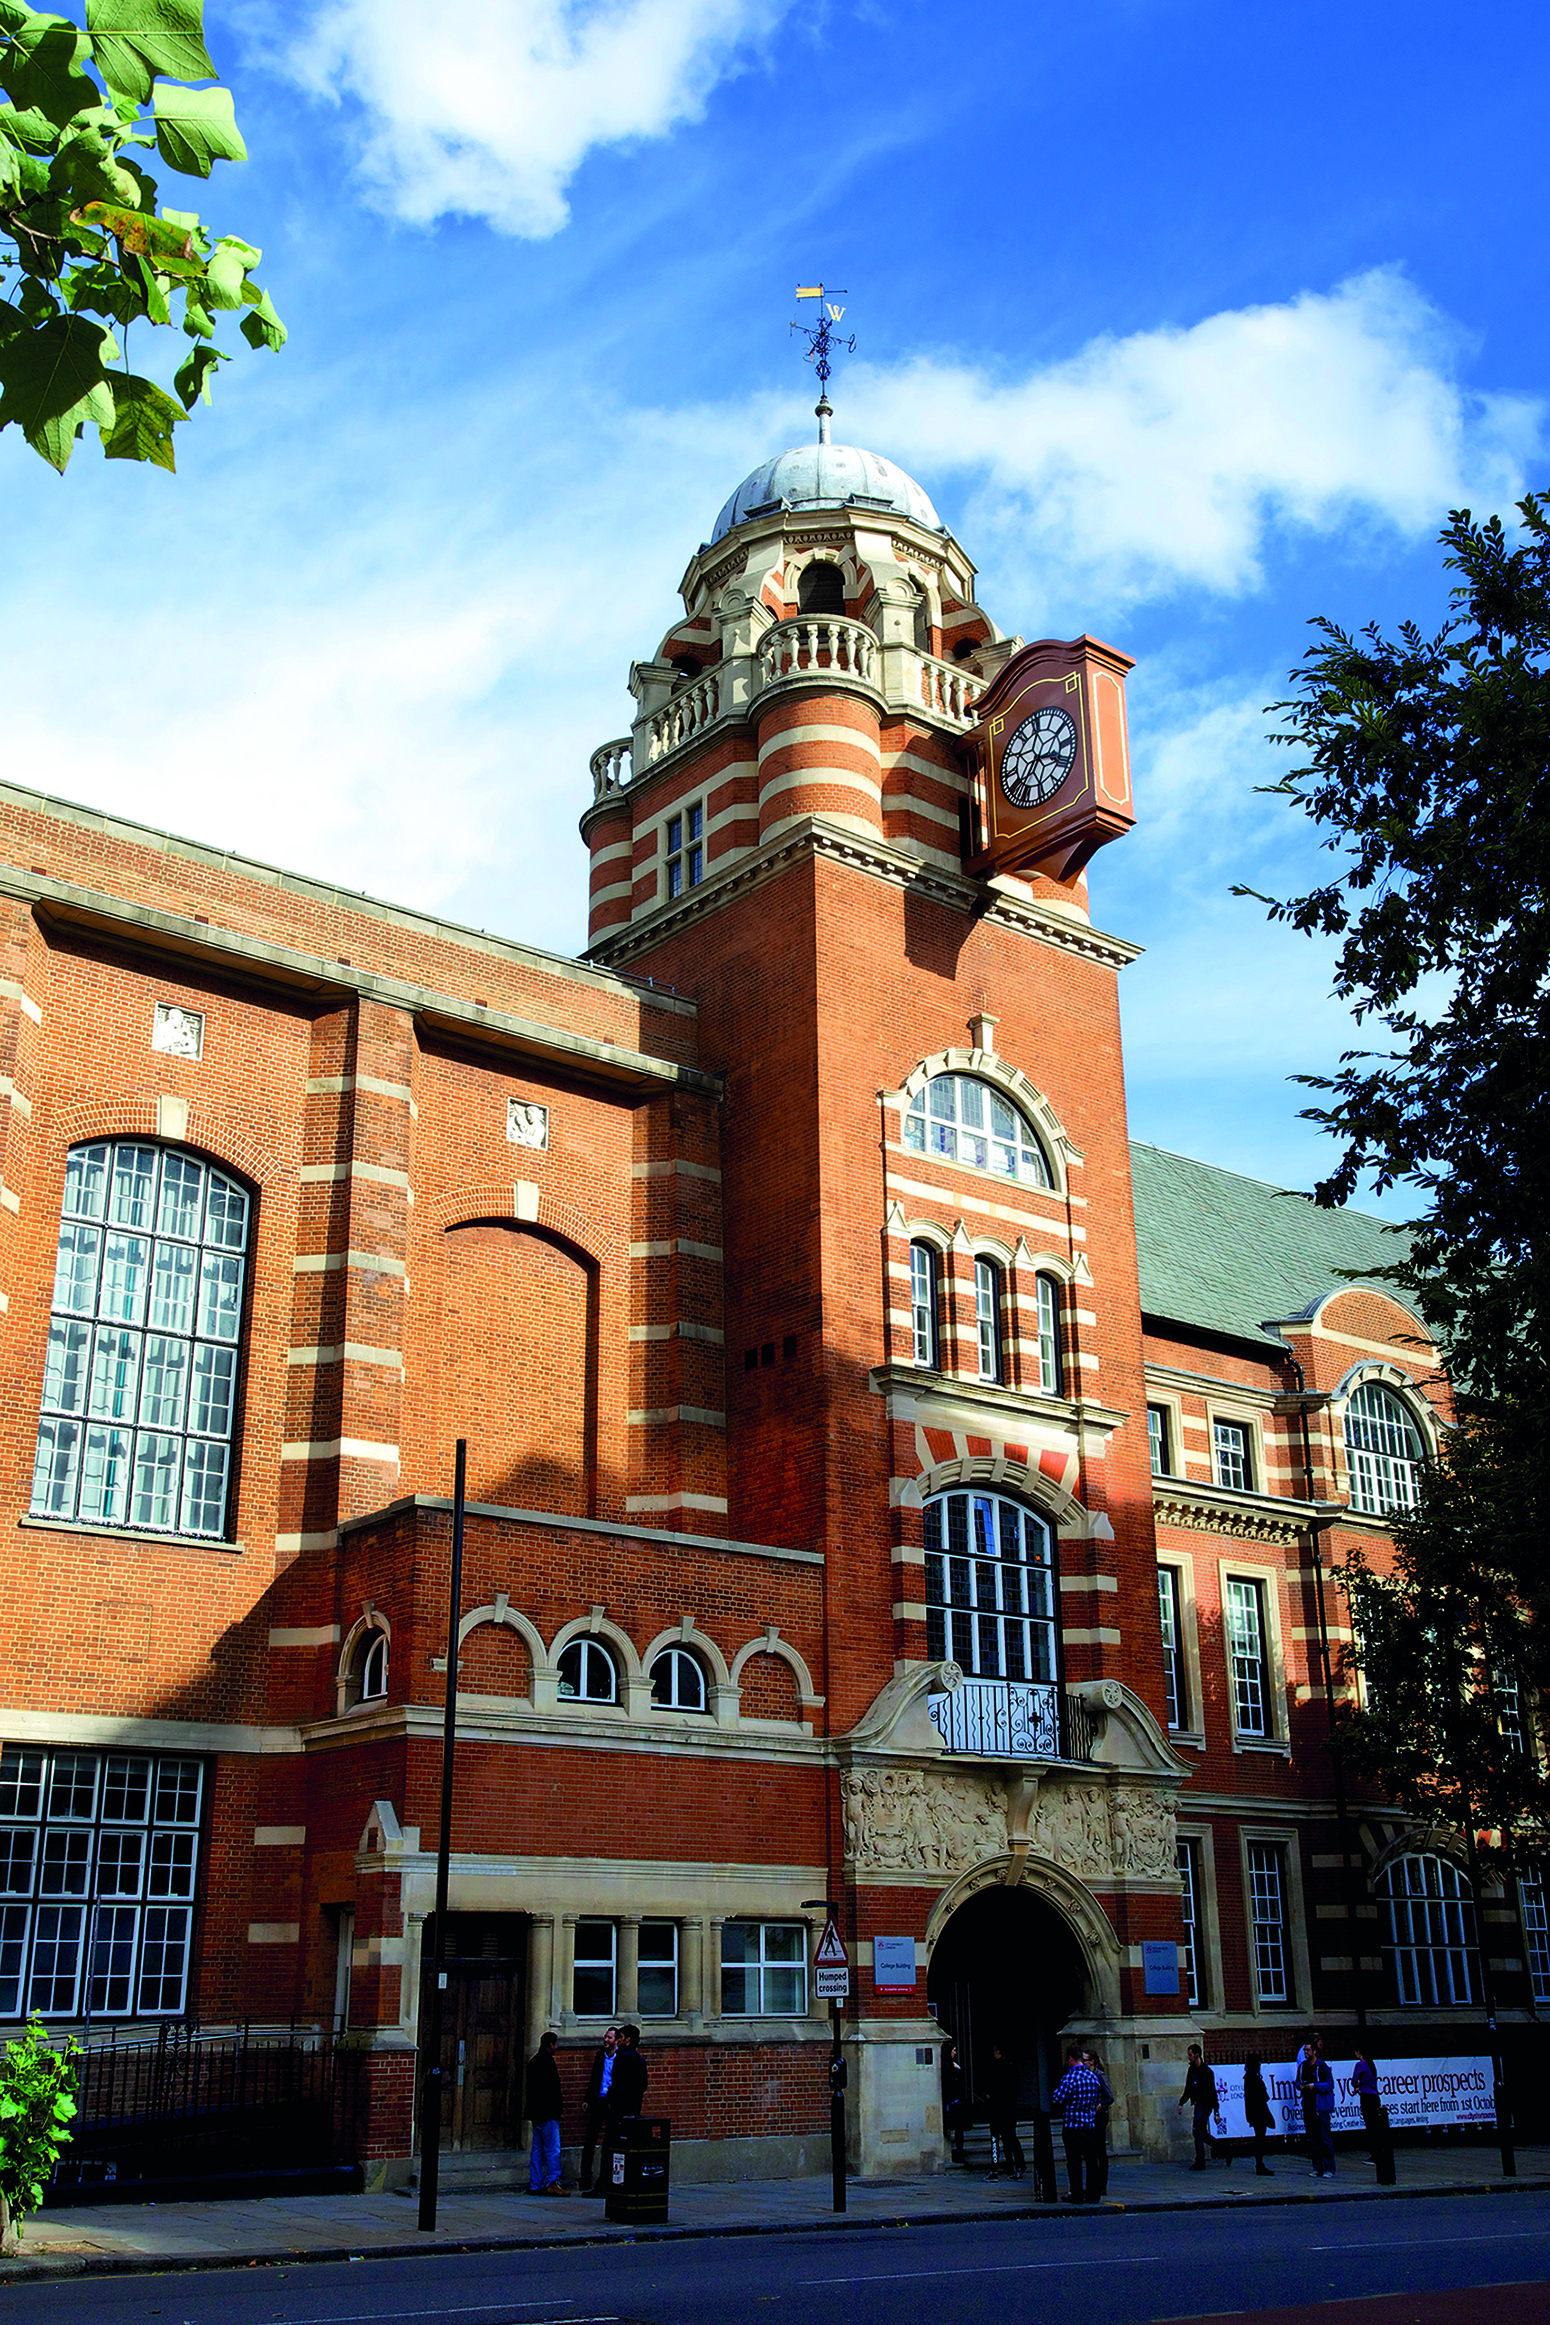 College Building entrance at City, University of London